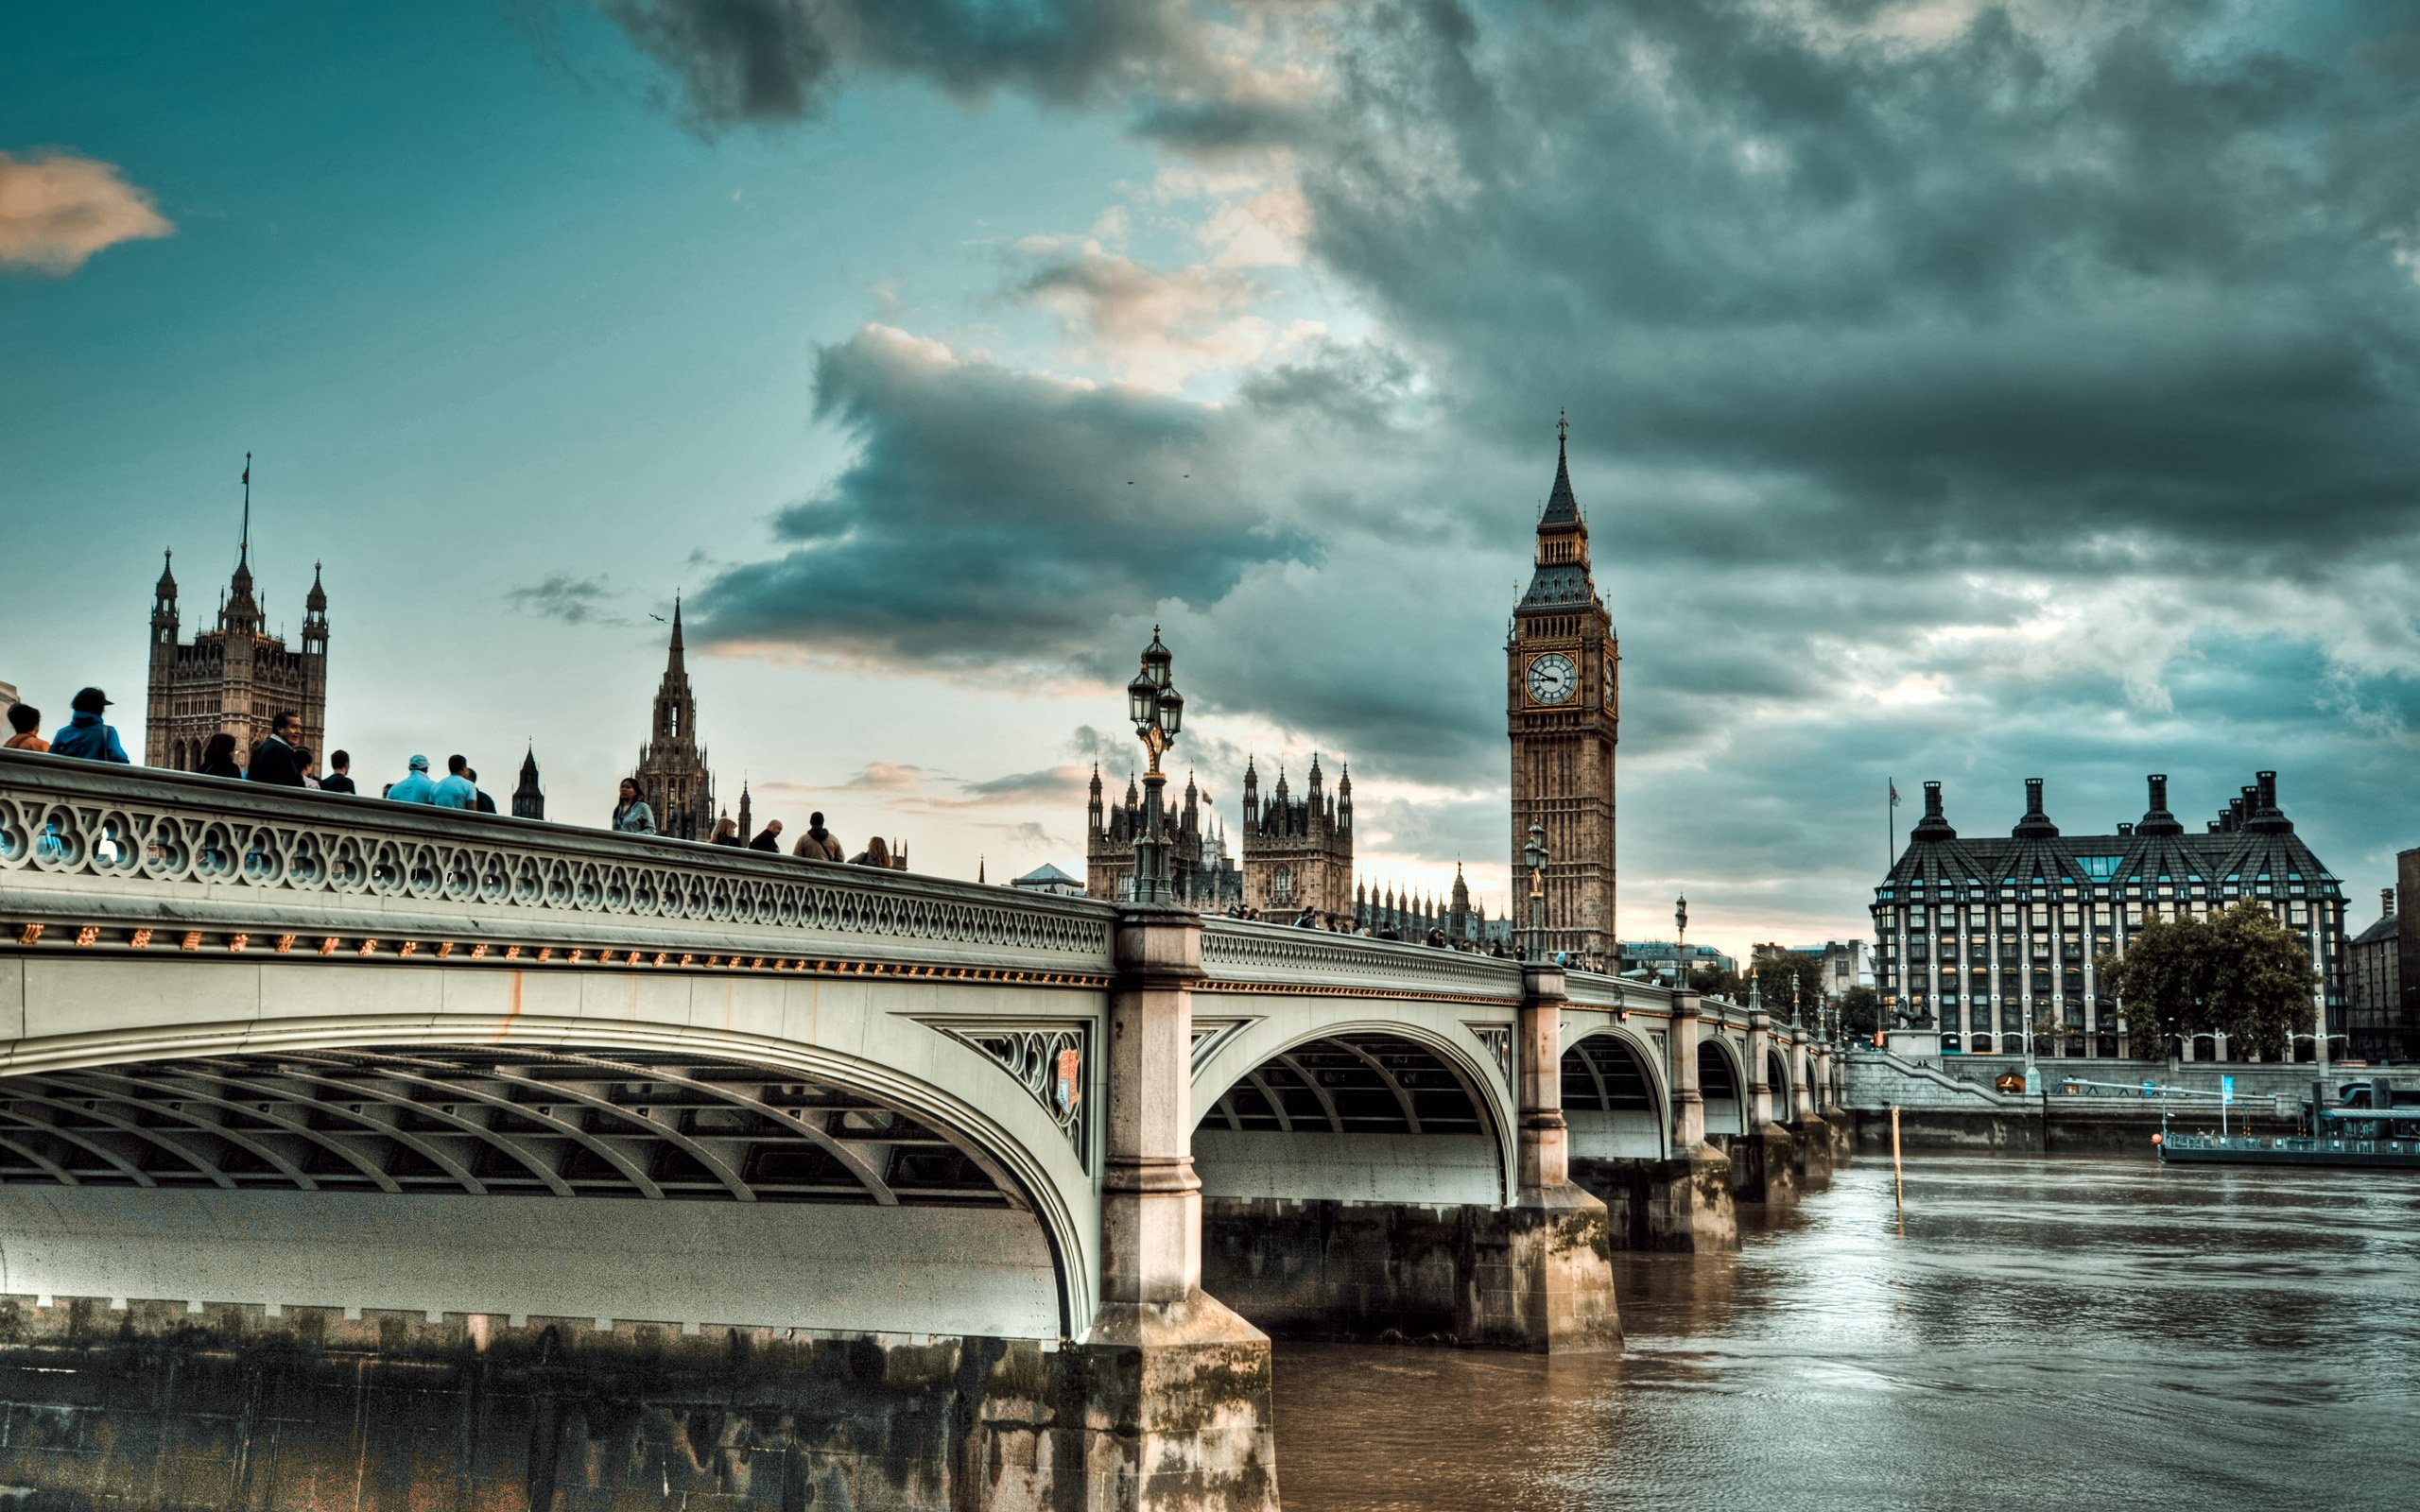 ... London, England wallpapers and images - wallpapers, pictures, photos